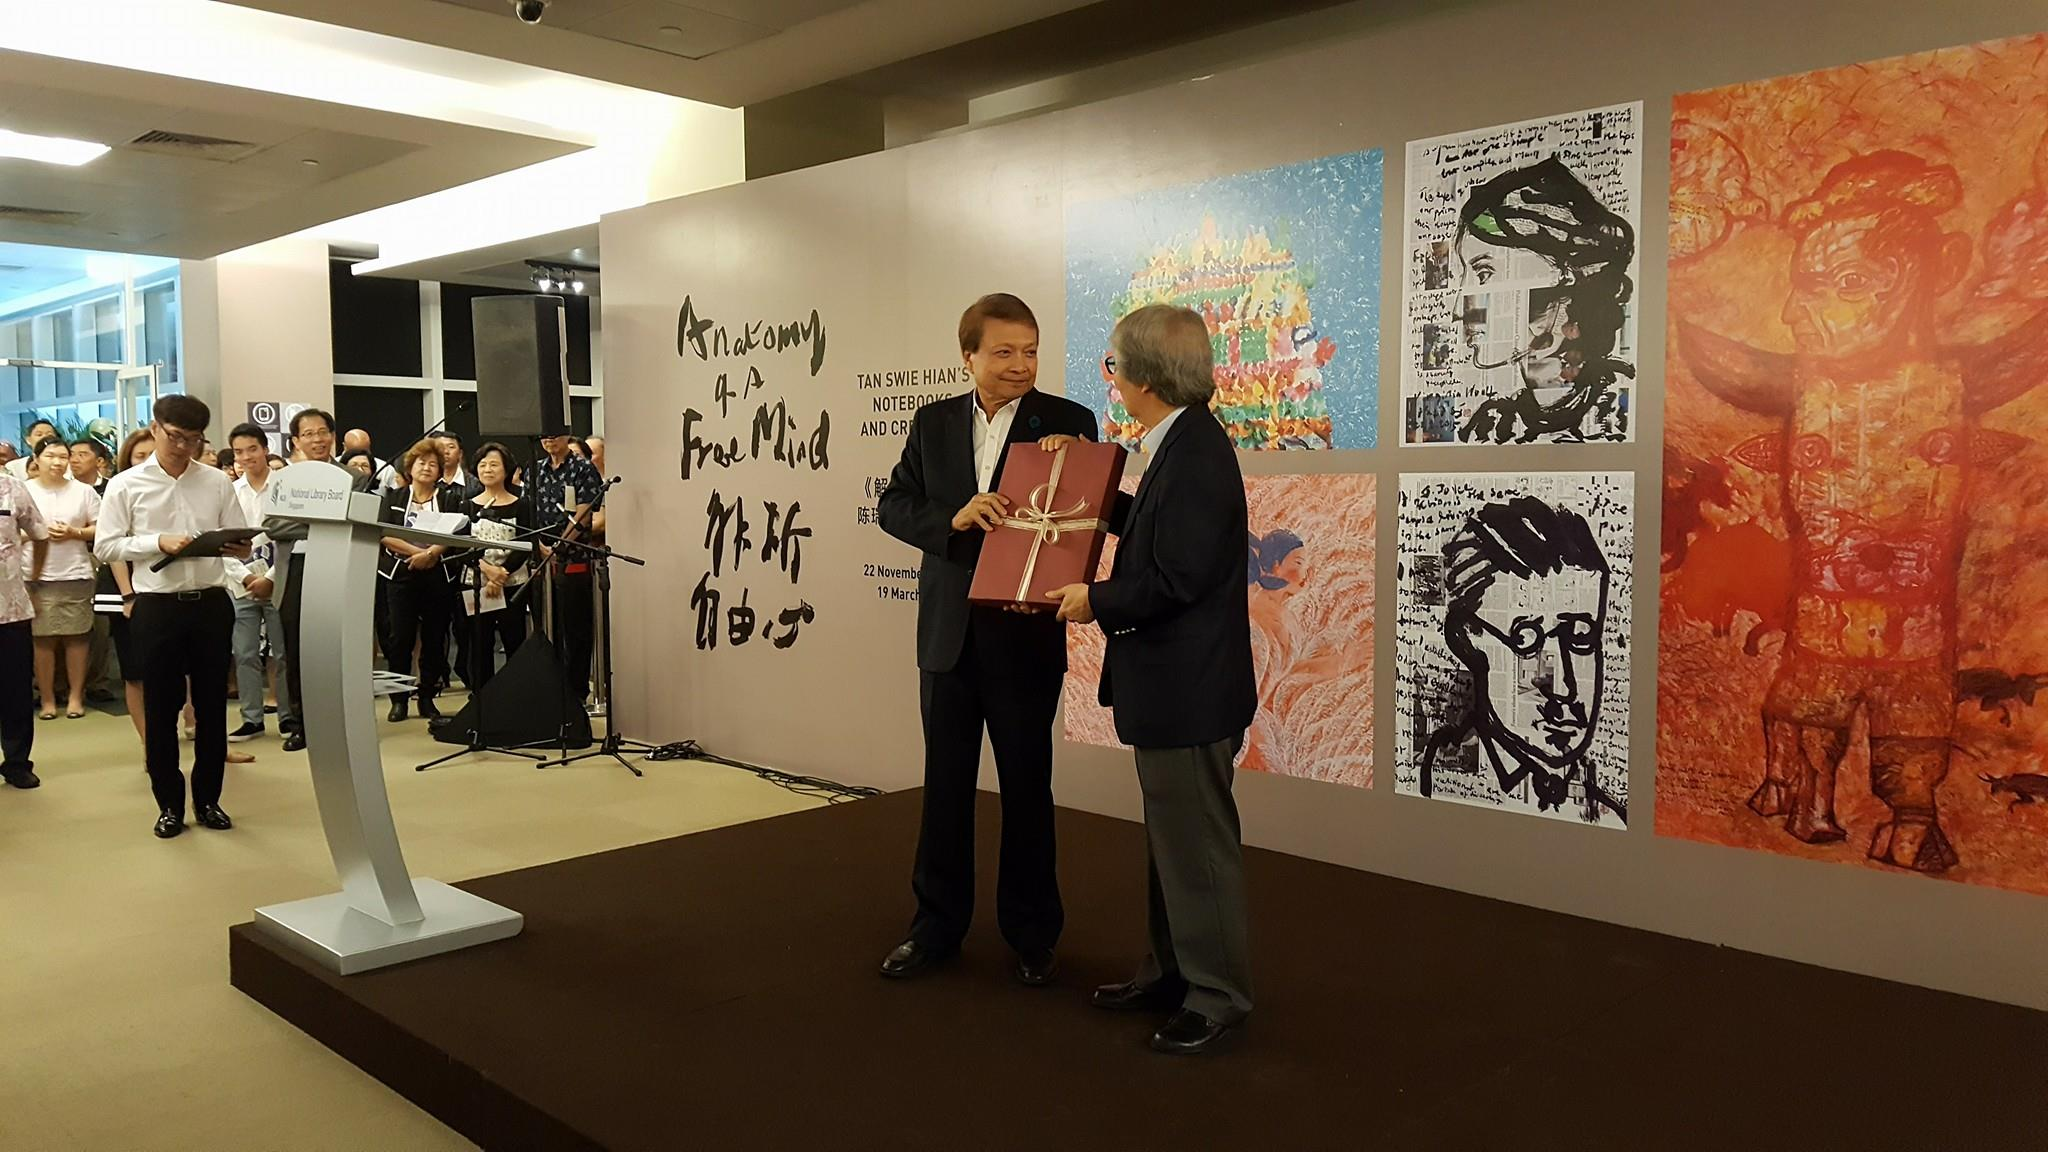 A photo of the exhibition opening event. Tan Swie Hian is on stage, receiving a gift box from Professor Tommy Koh.